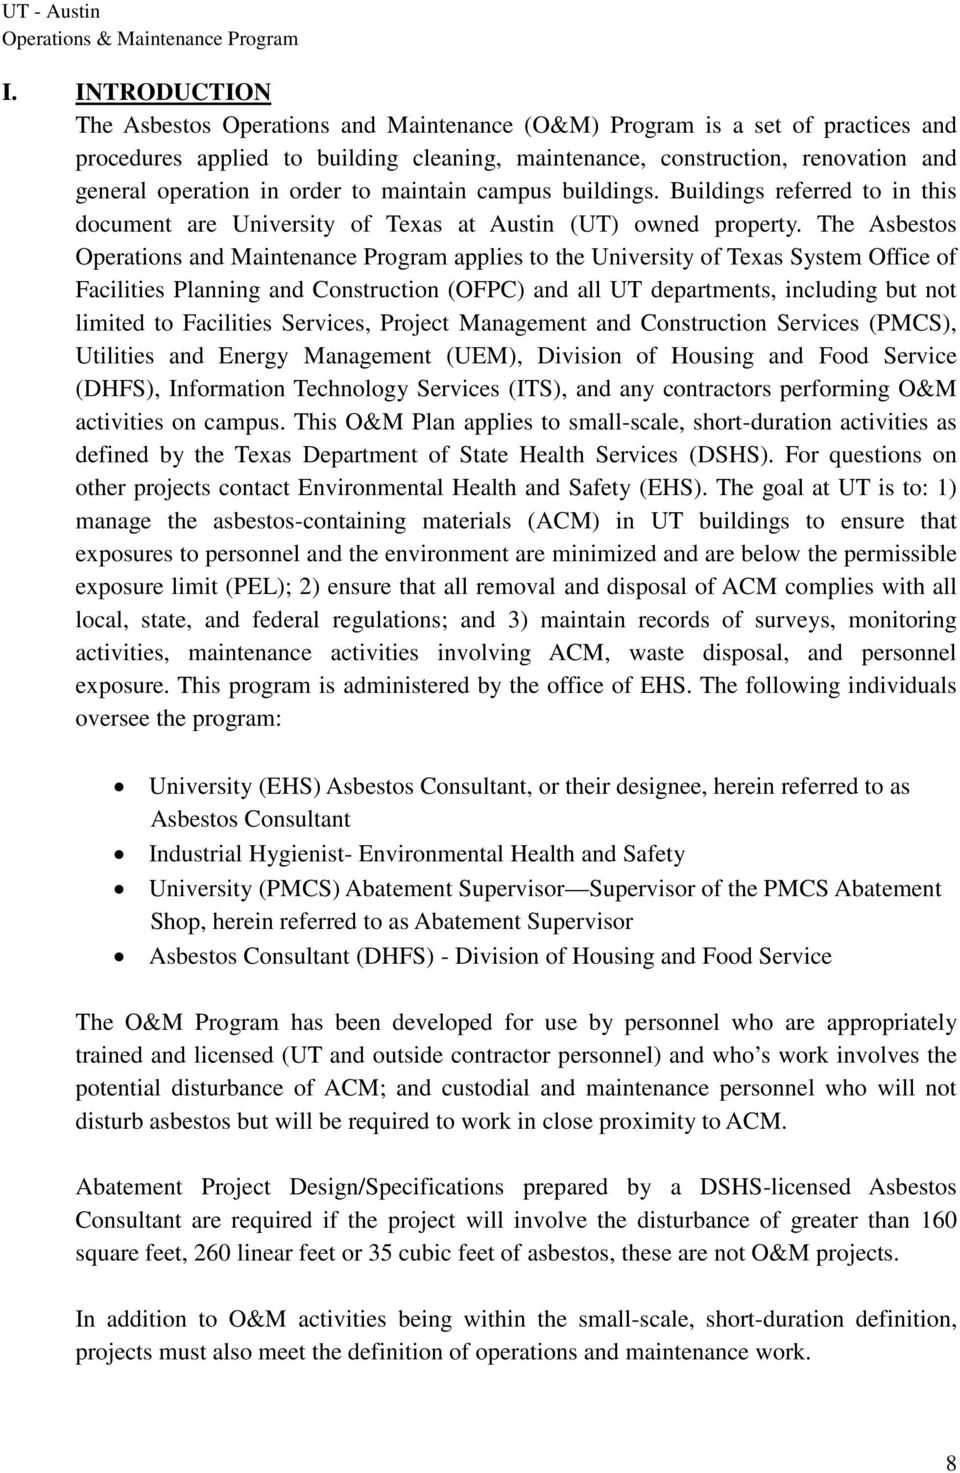 The Asbestos Operations and Maintenance Program applies to the University of Texas System Office of Facilities Planning and Construction (OFPC) and all UT departments, including but not limited to